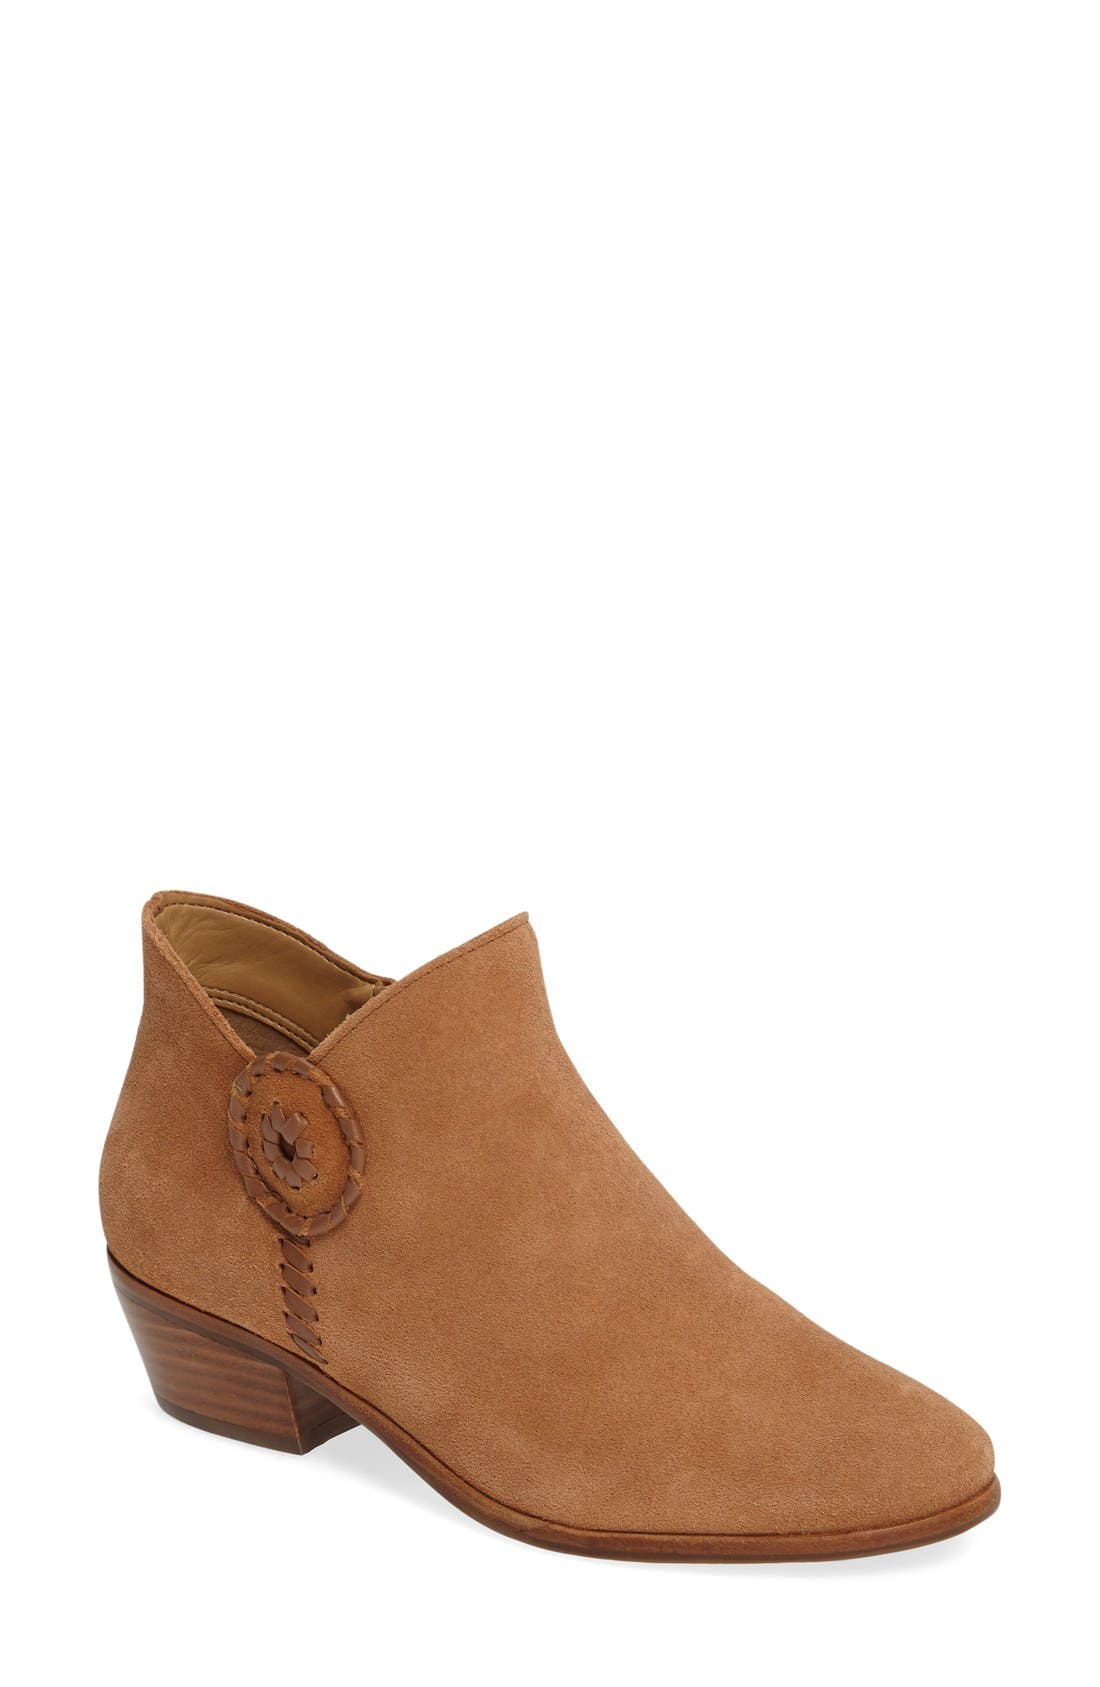 Peyton Bootie,                             Main thumbnail 1, color,                             Oak Suede